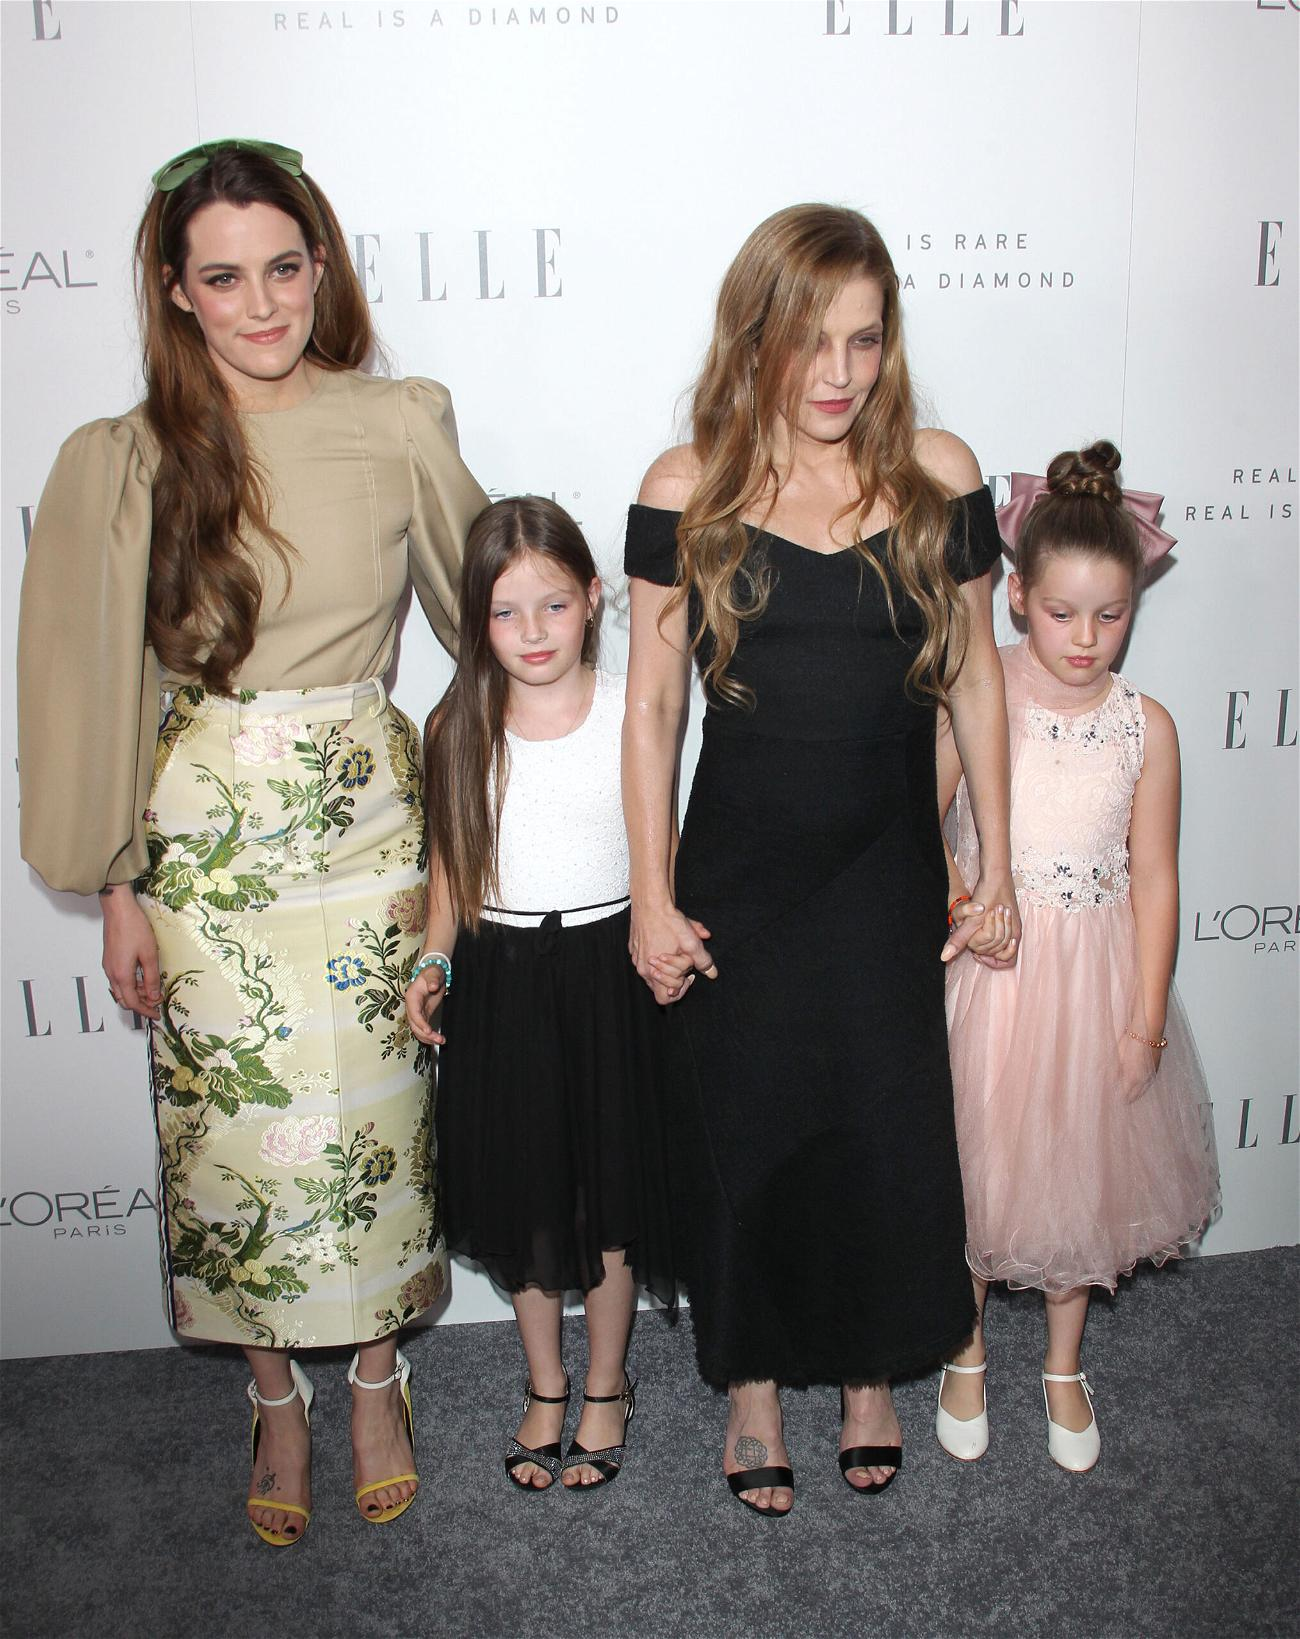 Lisa Marie Presley's Ex-Husand Request Child Support In Ongoing Divorce